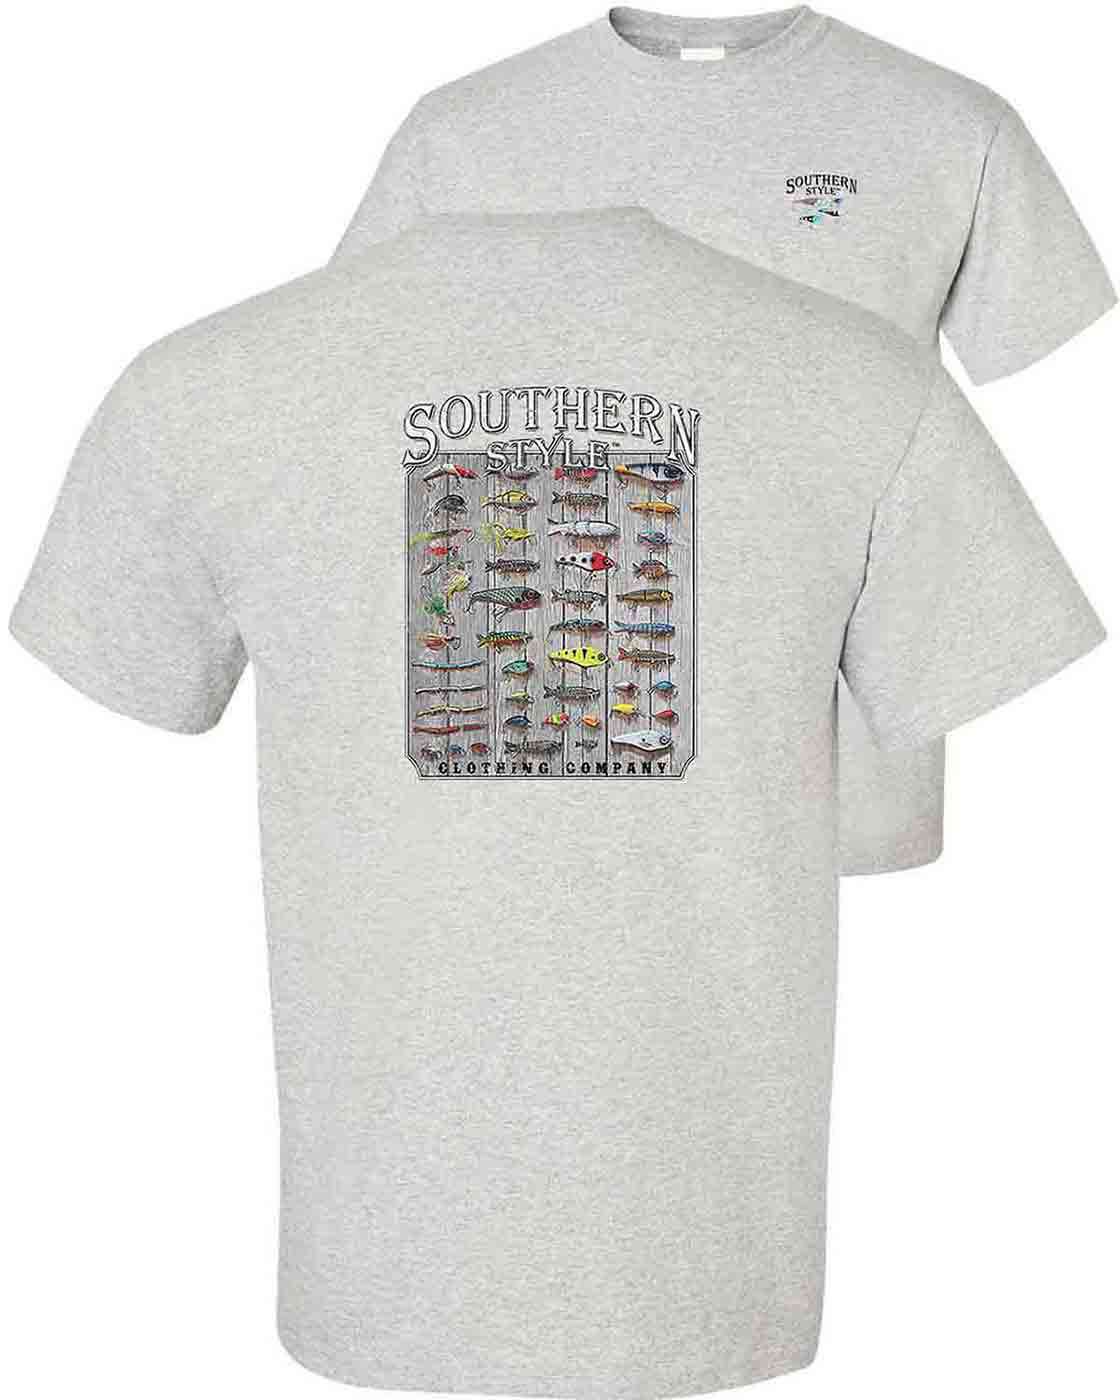 southern-style-bass-fishing-lures-baits-t-shirt-ash-grey1.jpg